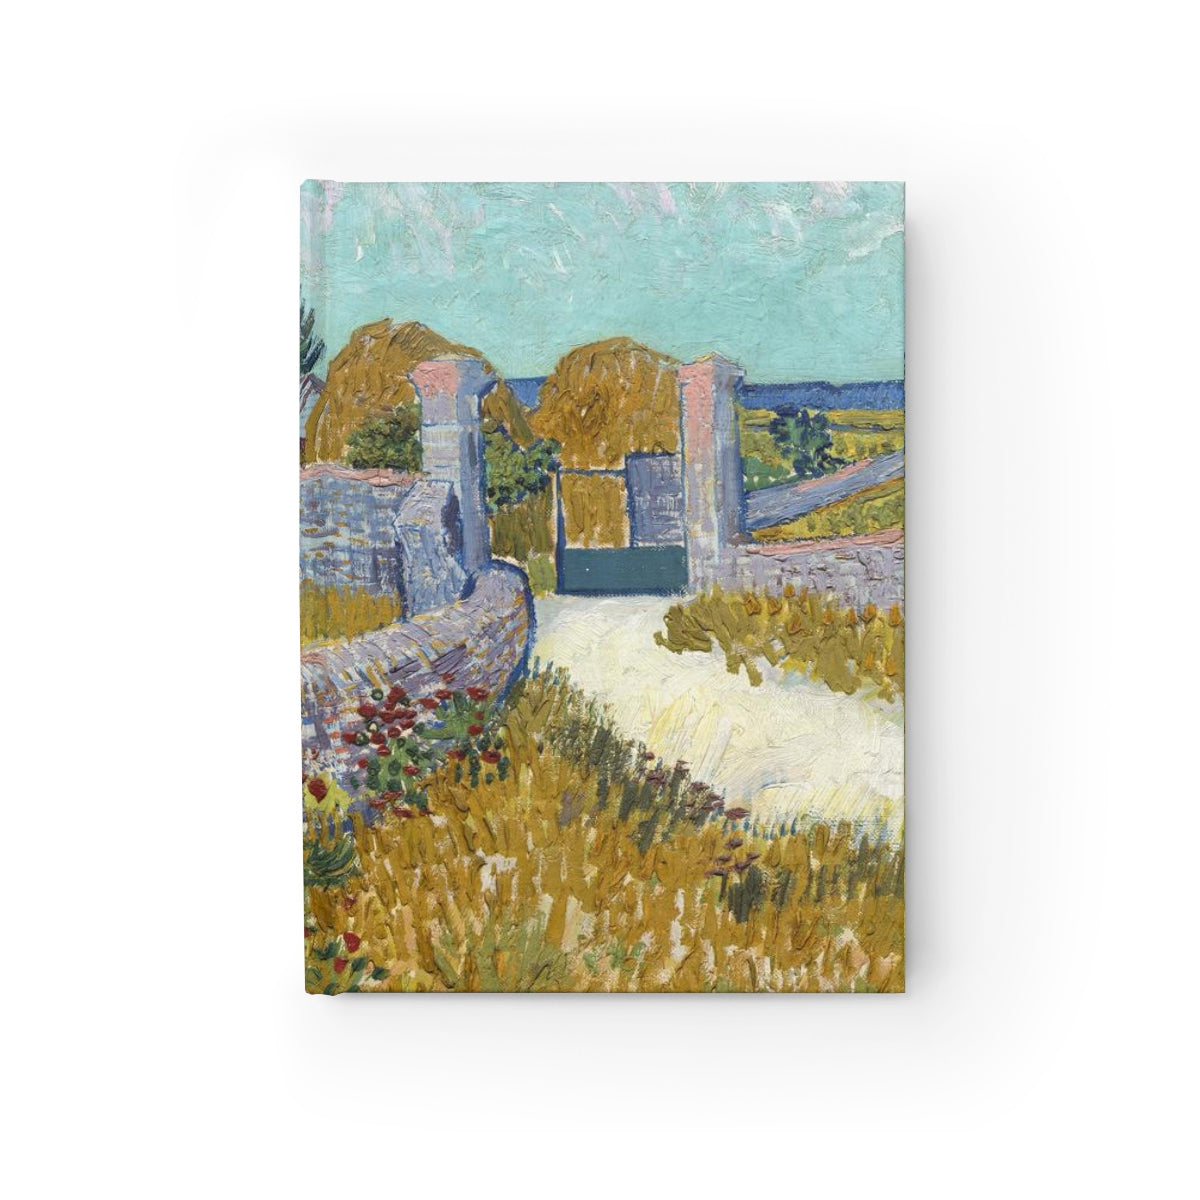 Farmhouse in Provence [1888] B6 Art Journal - Kiaroskuro